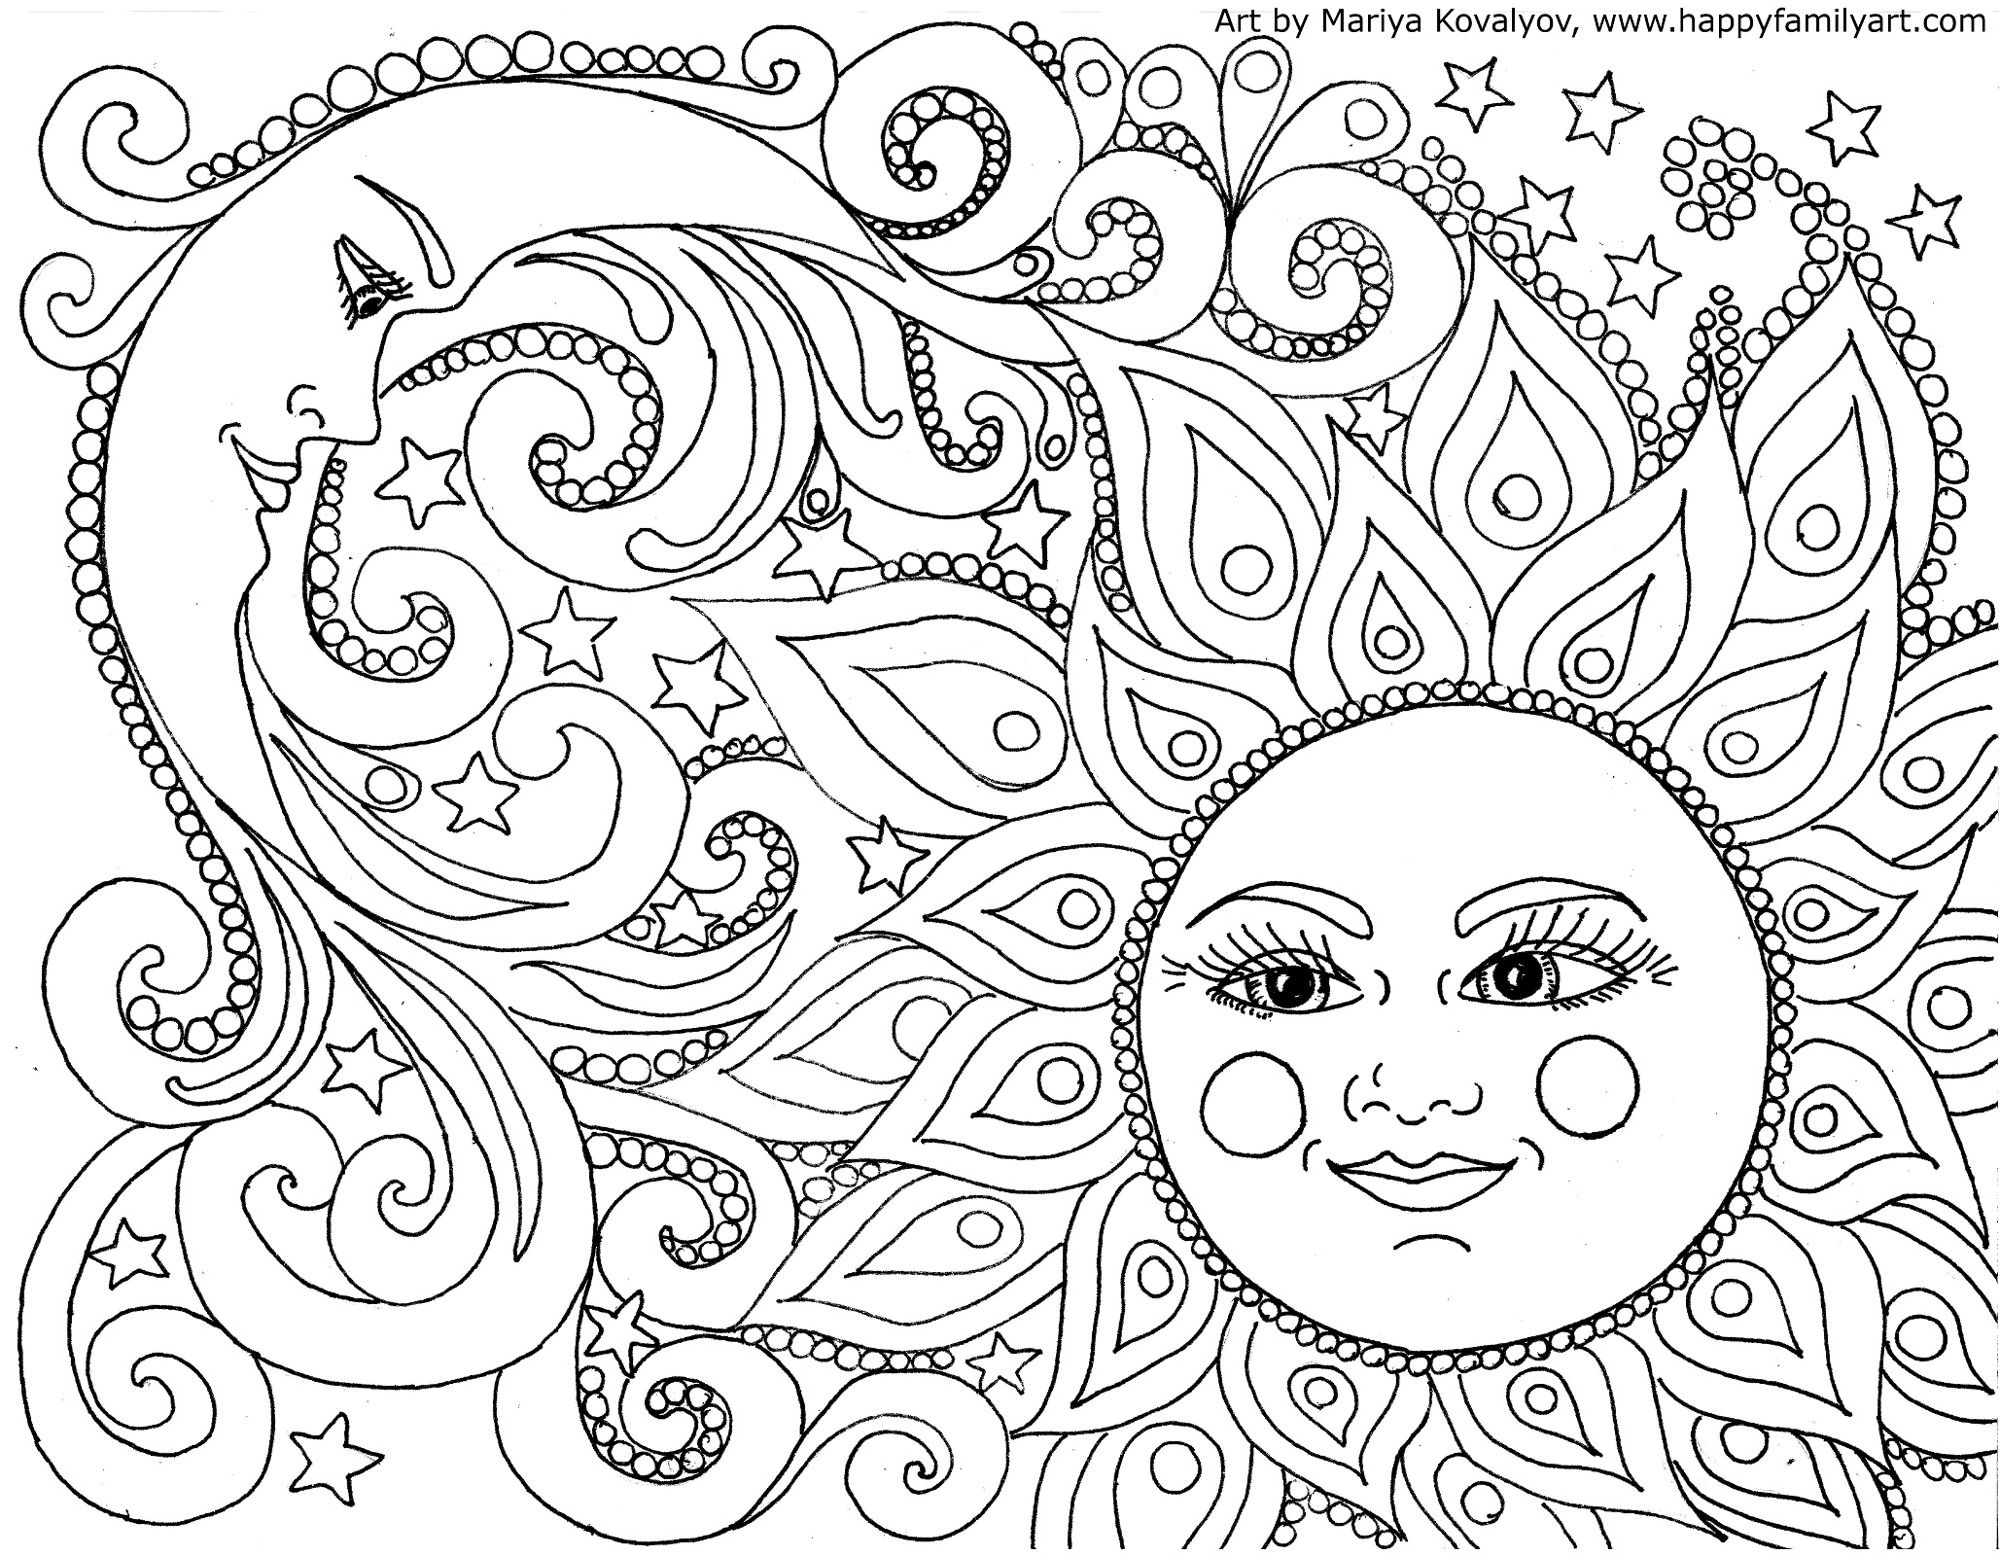 Coloring pages for 9 and up - Sun And Moon Coloring Pages Adult